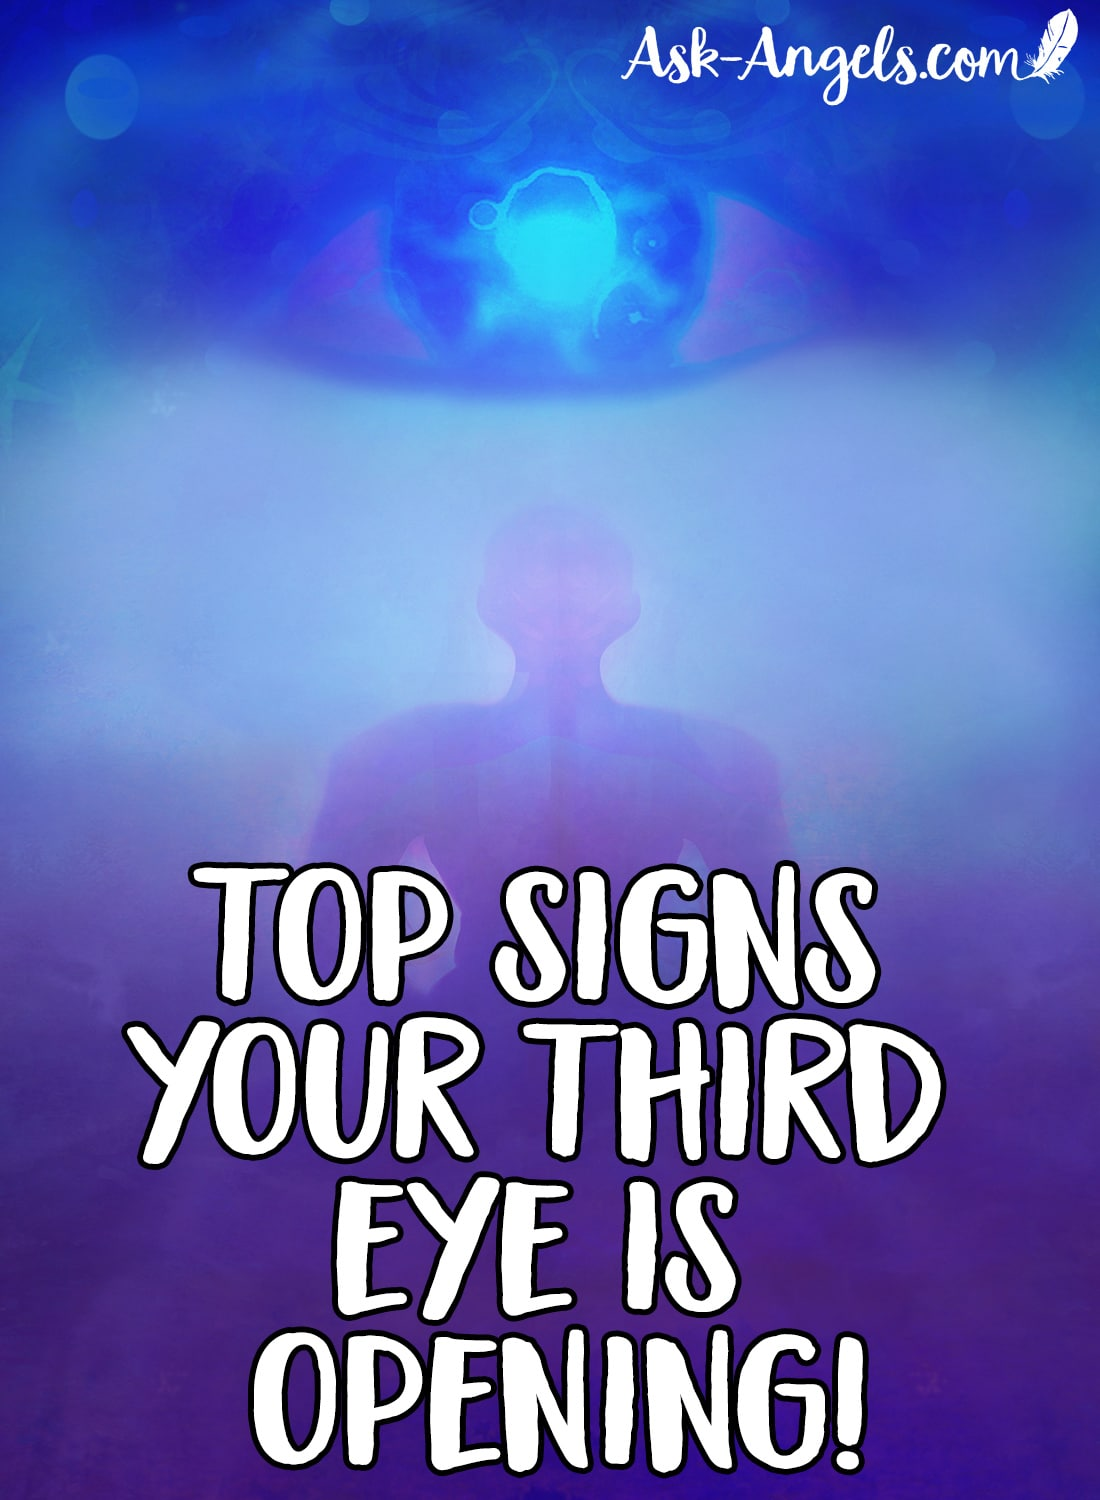 Top Signs Your Third Eye Is Opening